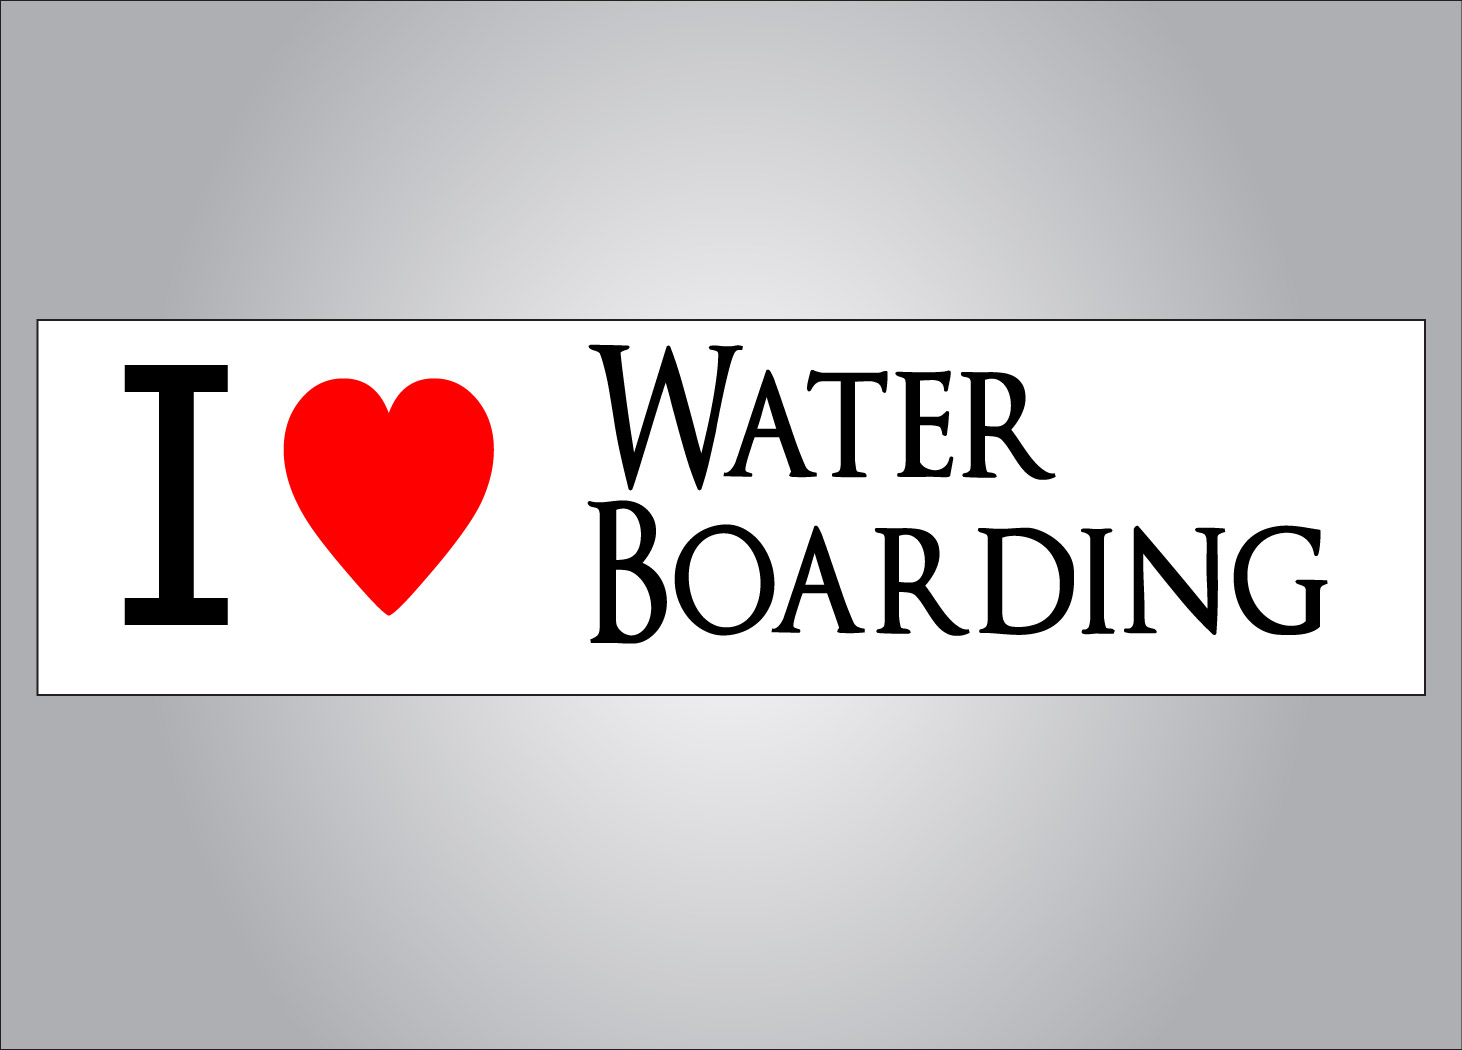 If you support water boarding get the I heart water boarding bumper sticker.